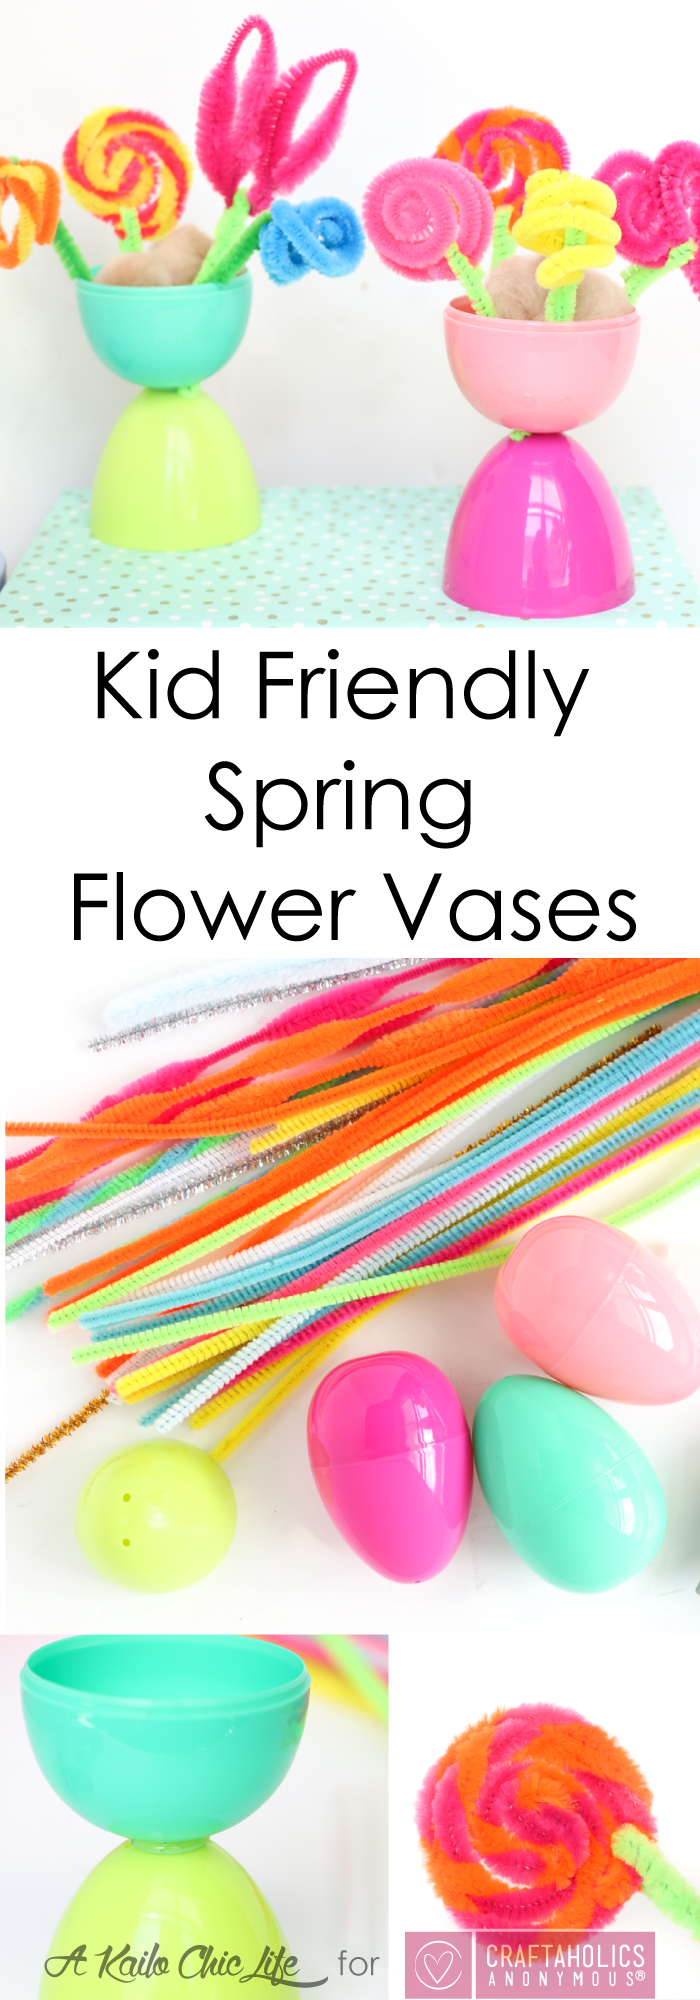 Kid Friendly Spring Flower Vases - Use Plastic Easter Eggs and Pipe Cleaners to create the fun, colorful kid craft flower vases